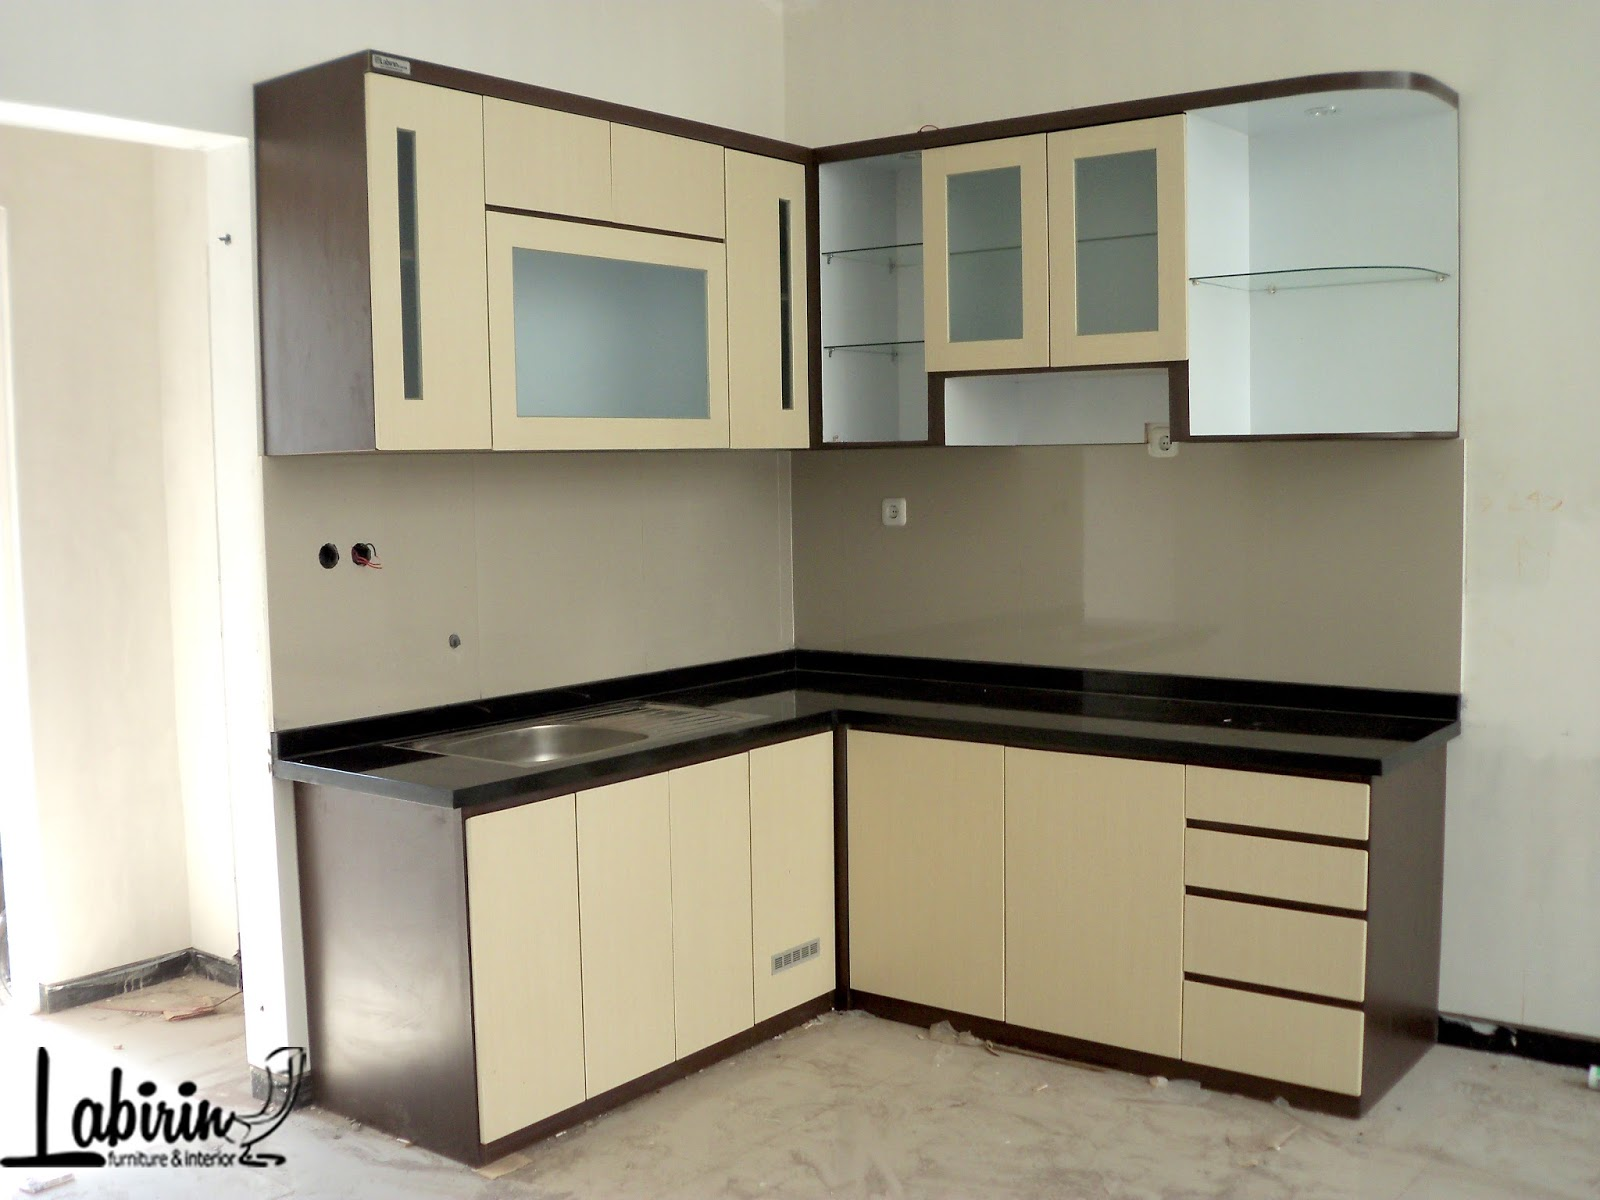 Meja Kompor Gas Sederhana Kitchen Set Malang Bapak Deny Kitchen Set Malang